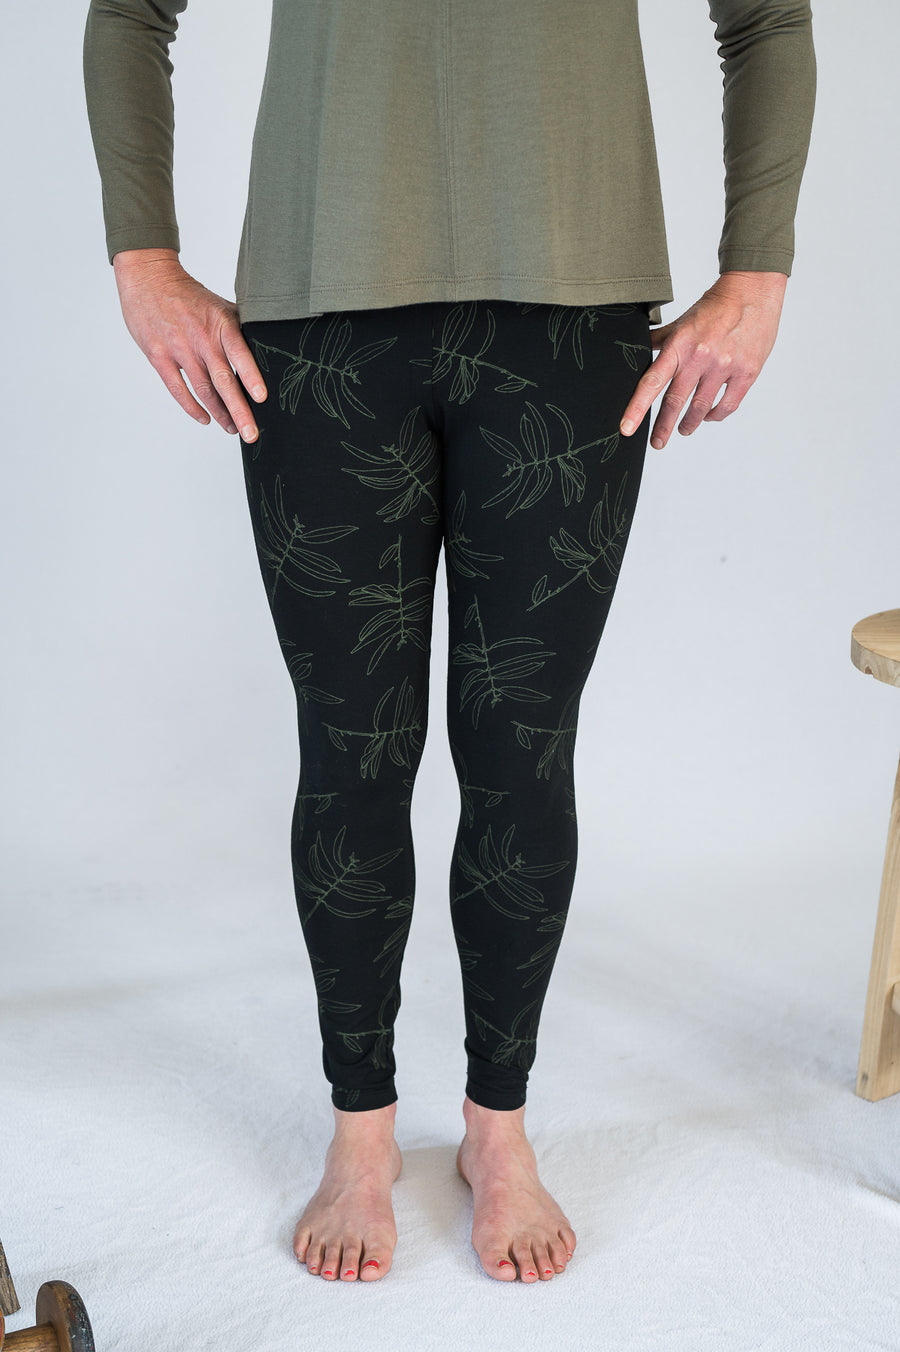 Travel Pants - Black/Khaki - Shop Online At Mookah - mookah.com.au